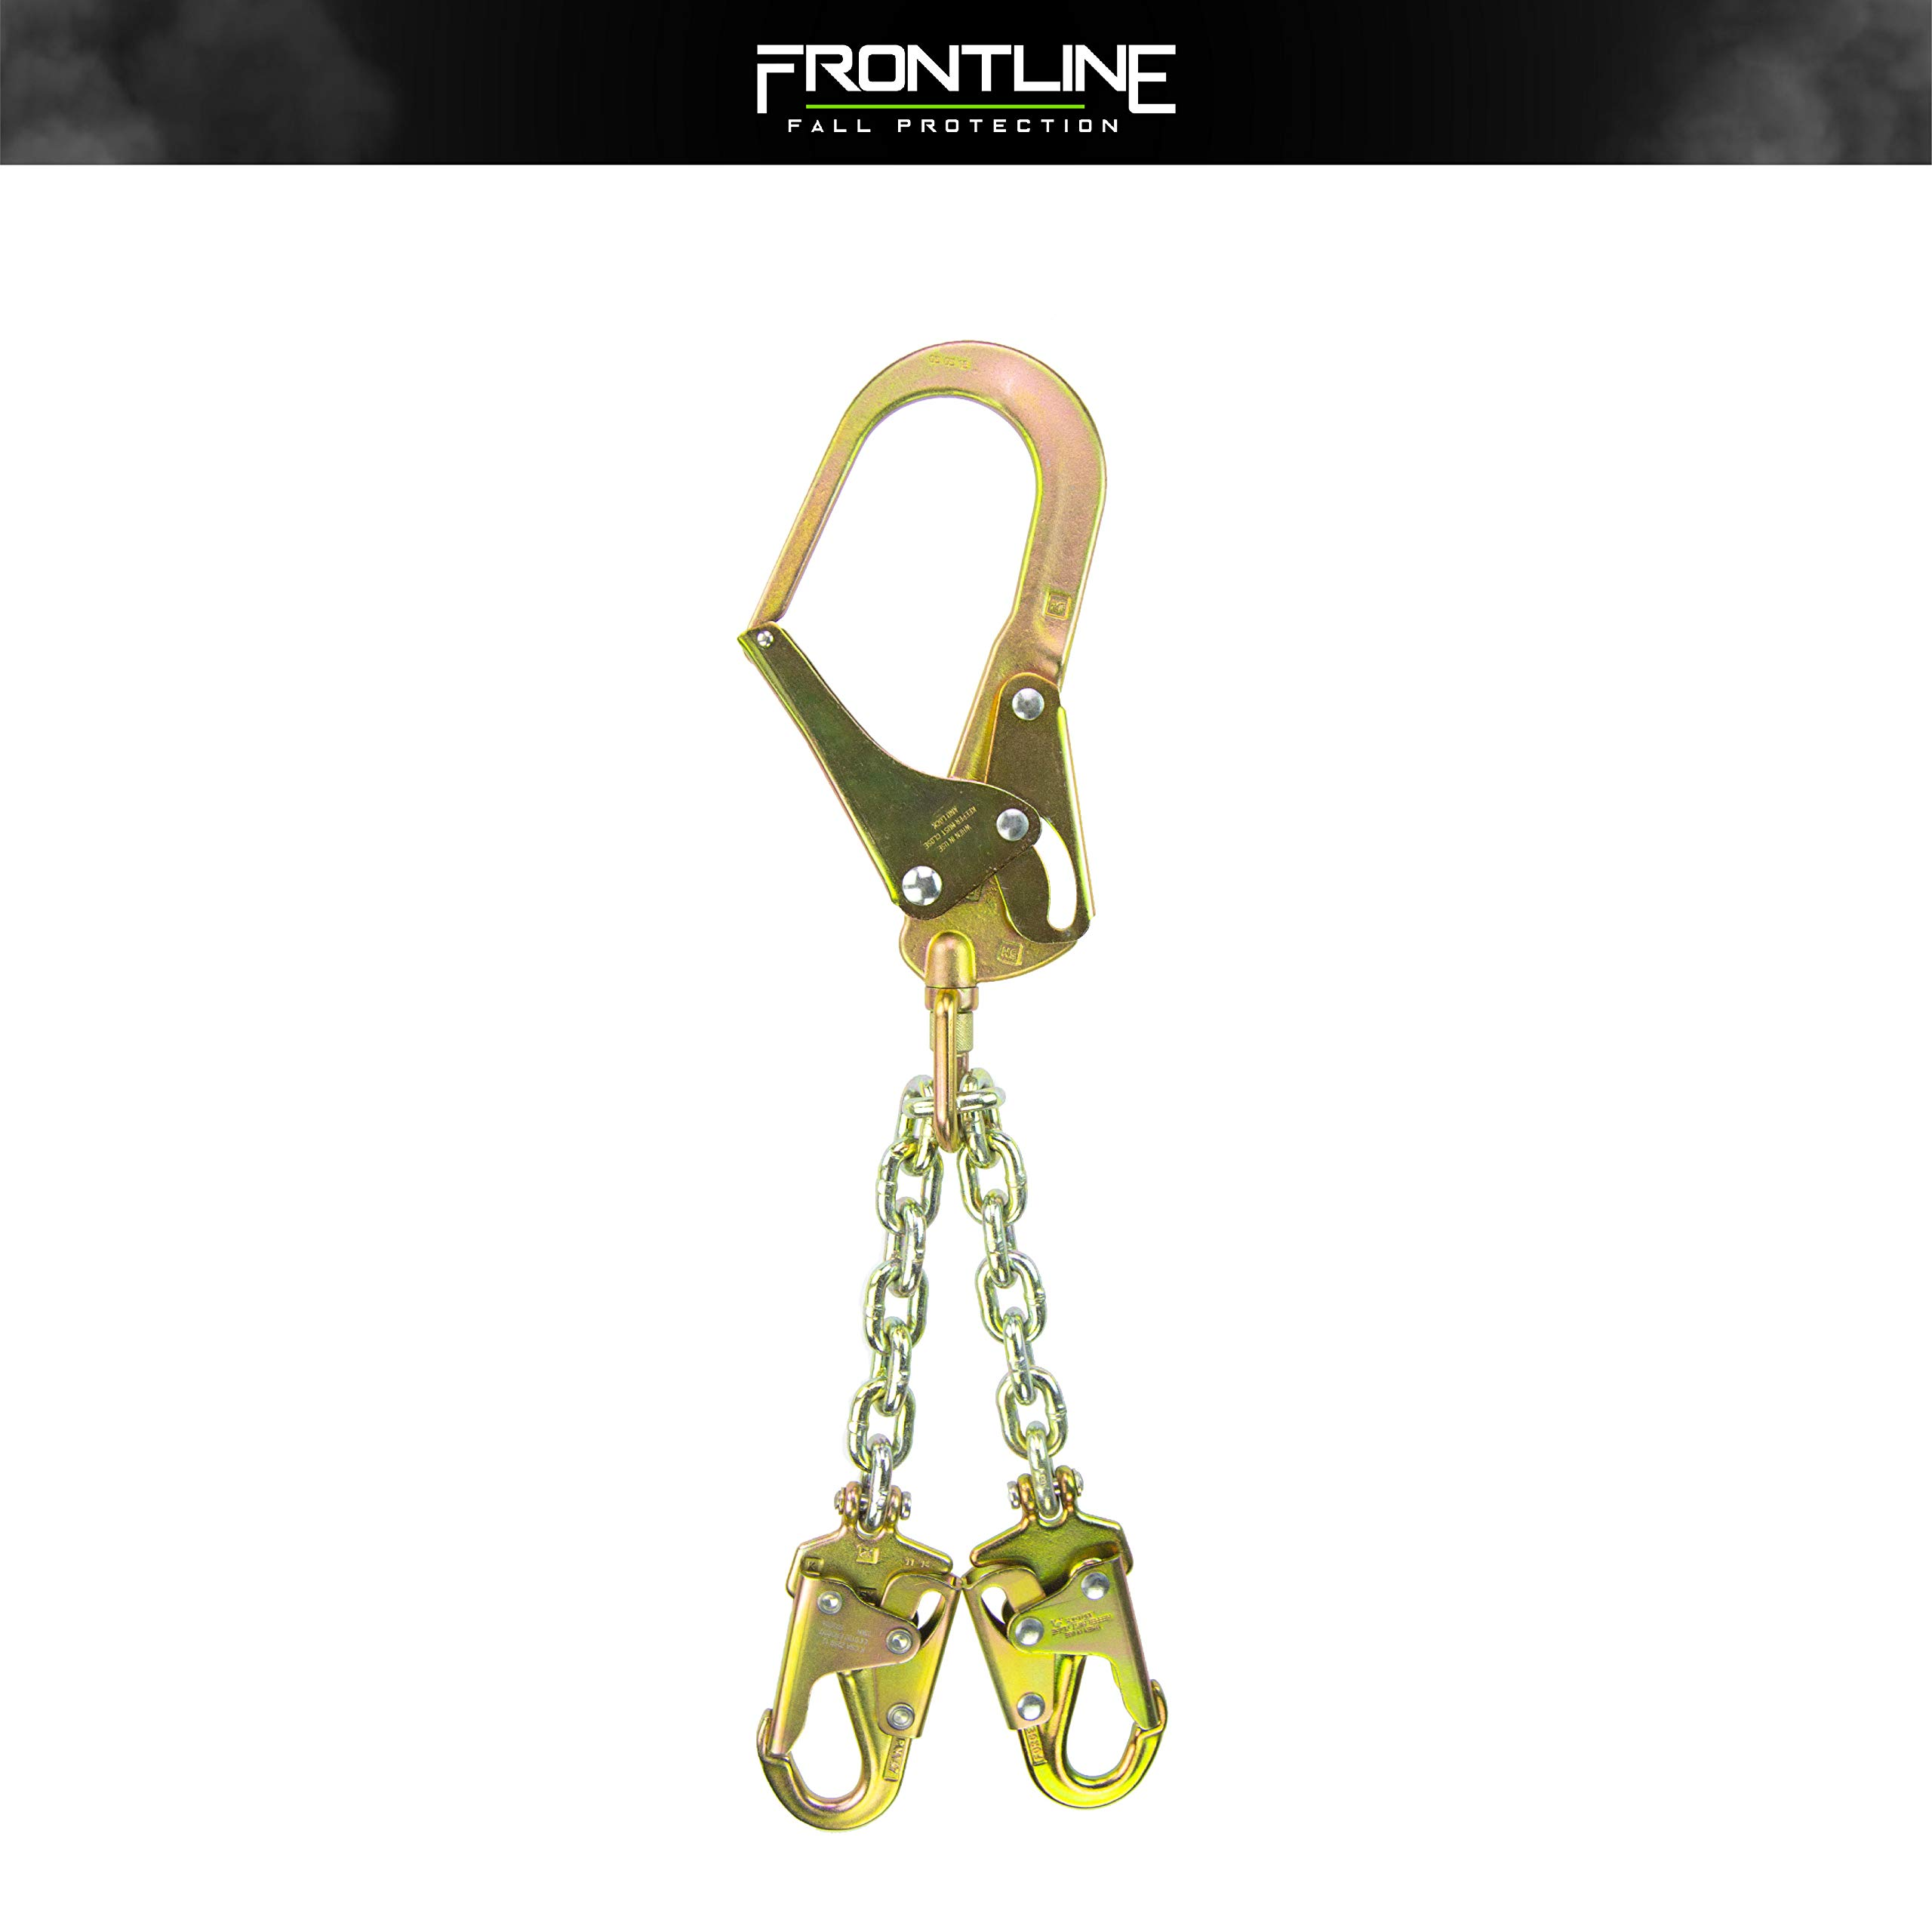 Frontline PSSW2R Rebar Positioning Chain Assembly with Swiveling Hook by Frontline Fall Protection